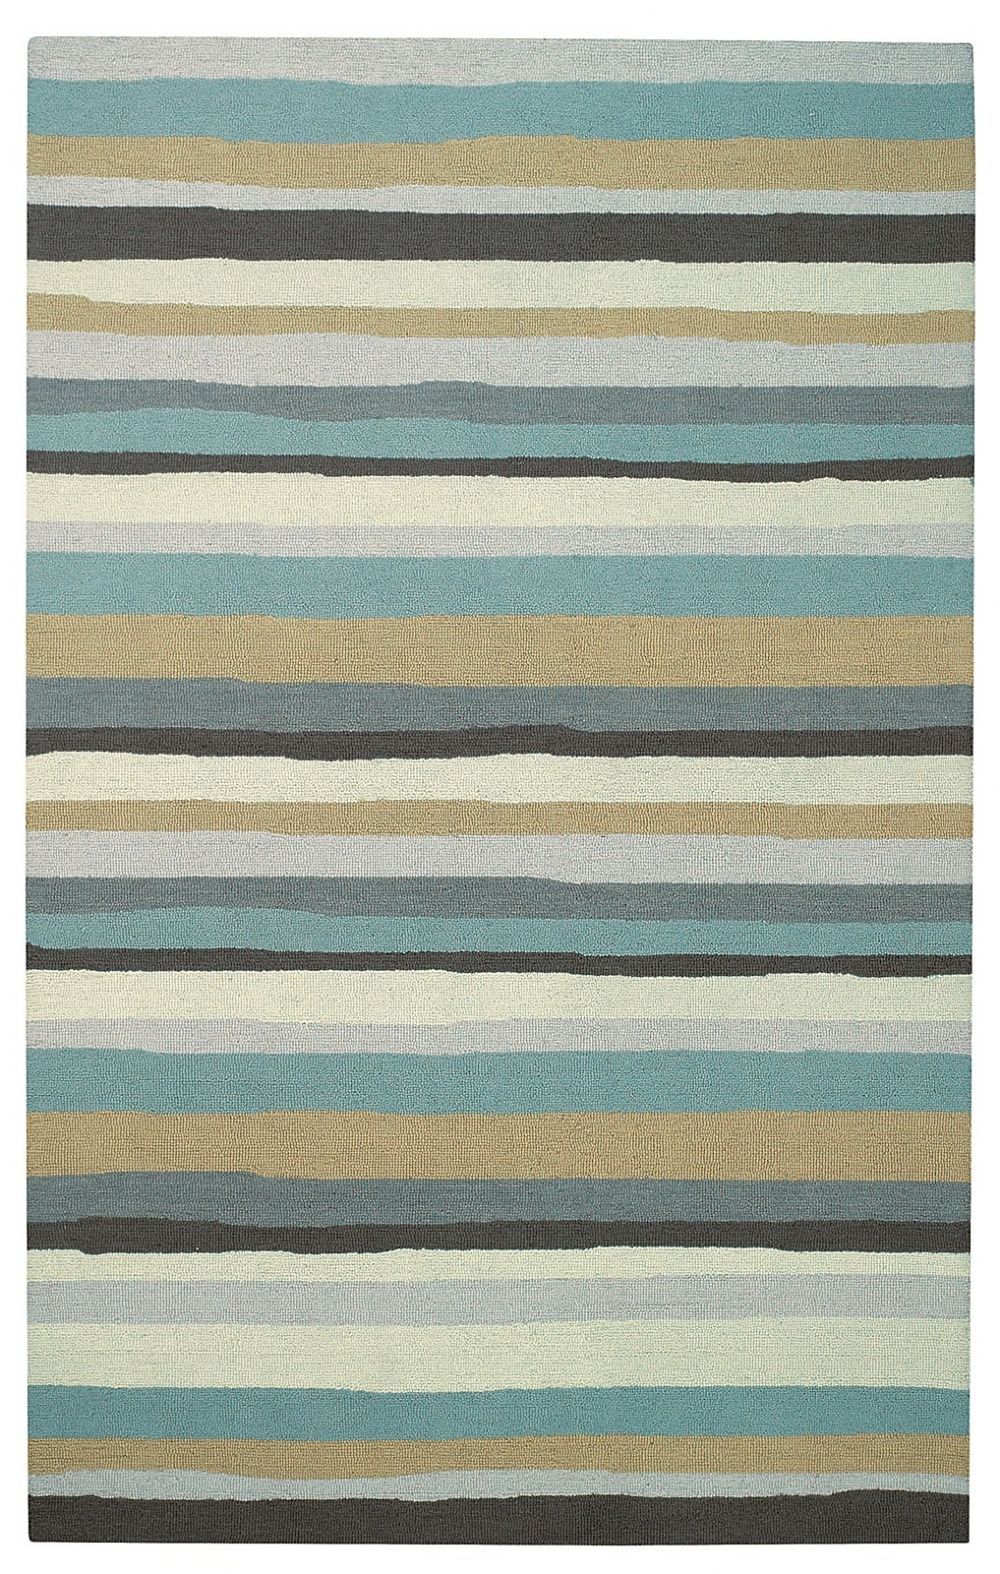 capel intrique-stripe contemporary area rug collection